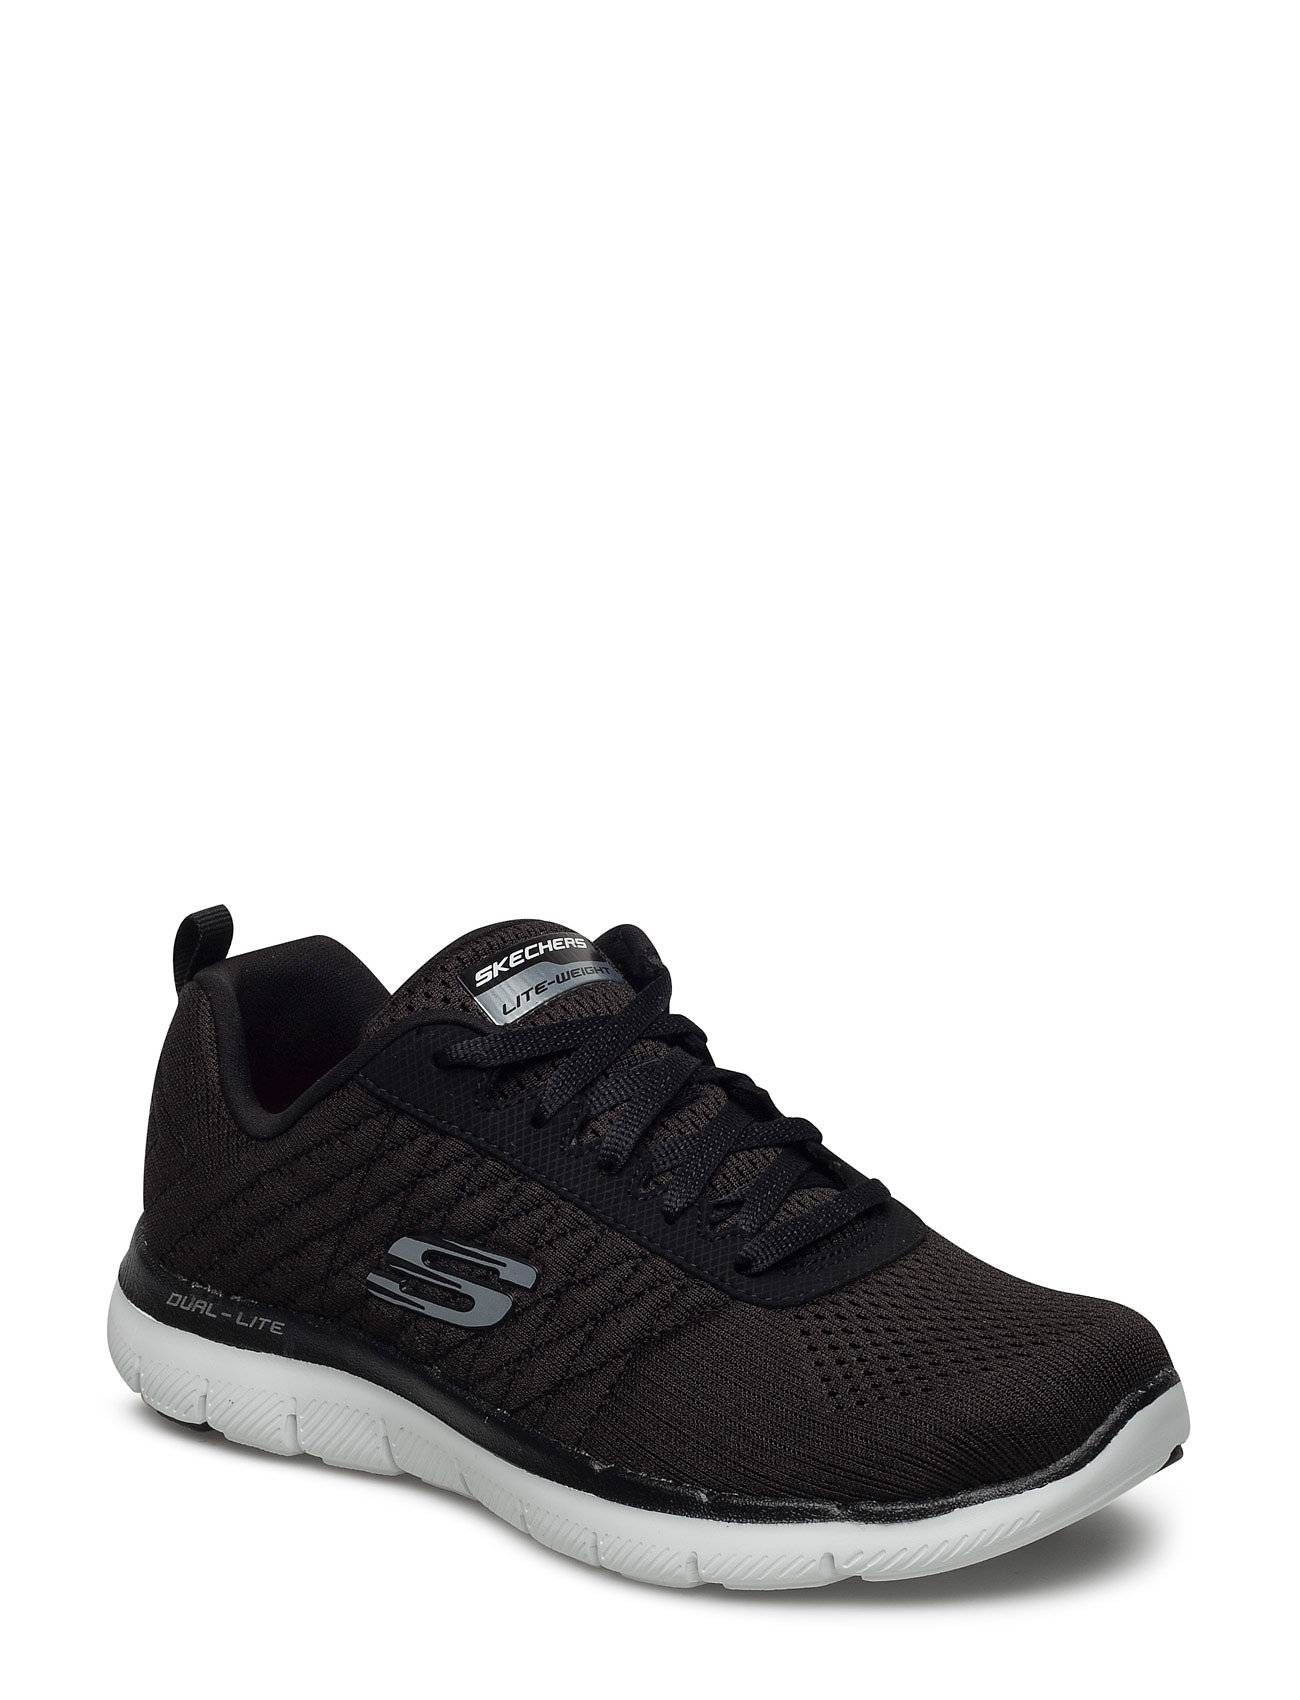 Skechers Womens Flex Appeal 2,0 Break Free